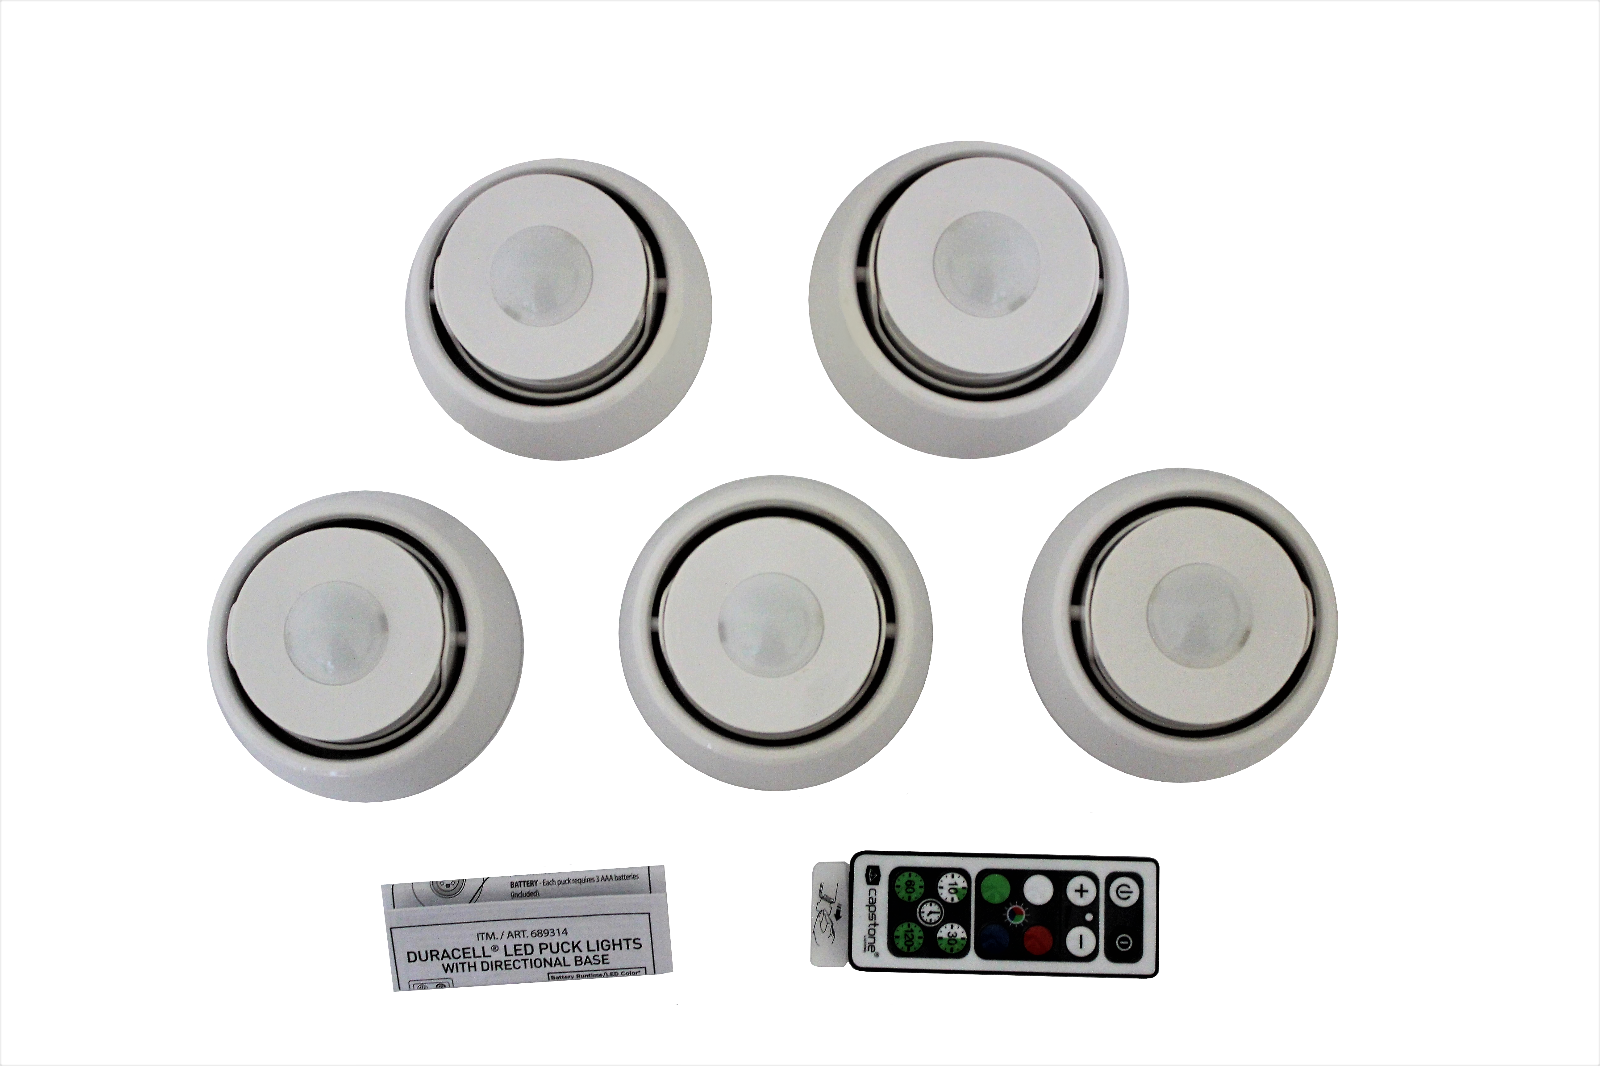 5 Count Capstone Industries Inc. Capstone LED Puck Lights with Directional Base